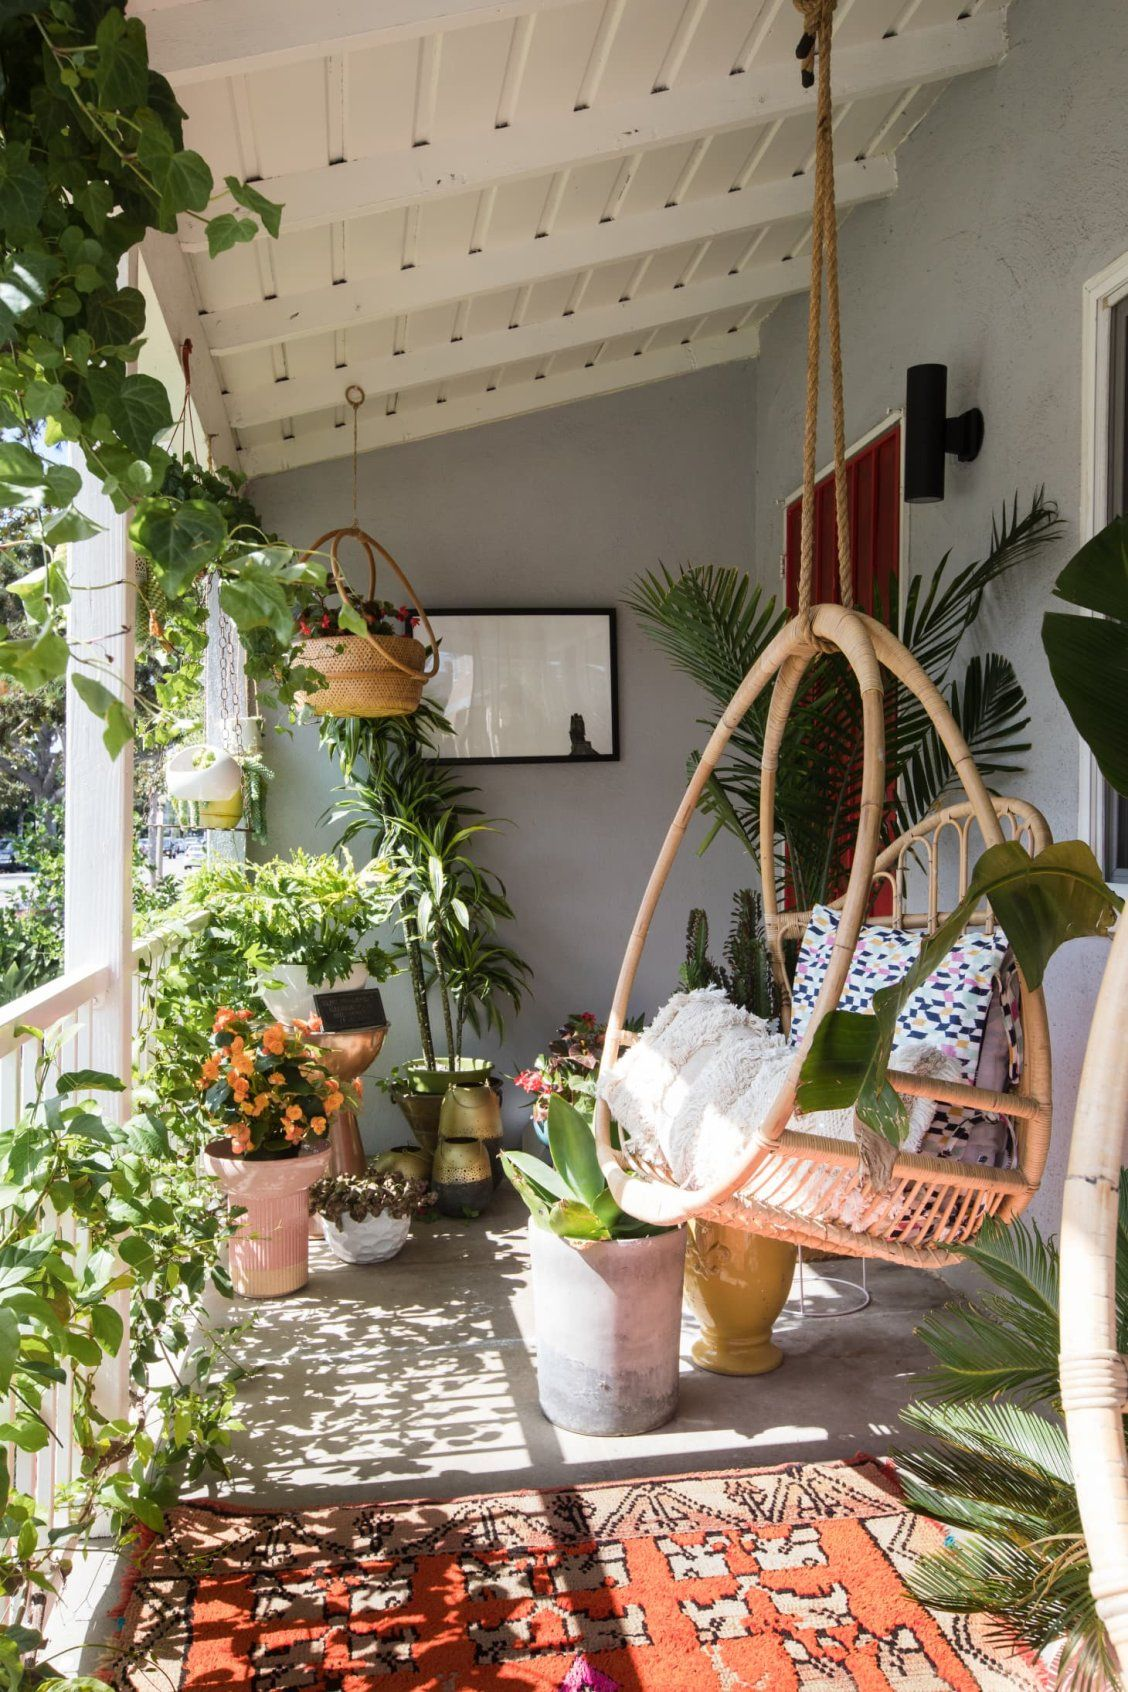 You don't have to have a huge backyard to enjoy the pleasures of the great outdoors. These small balconies, patios, and other exterior living spaces show how to make the most out of a little. I #outdoorspaces #plantfilledhomes #balconies #plants #hangingchair